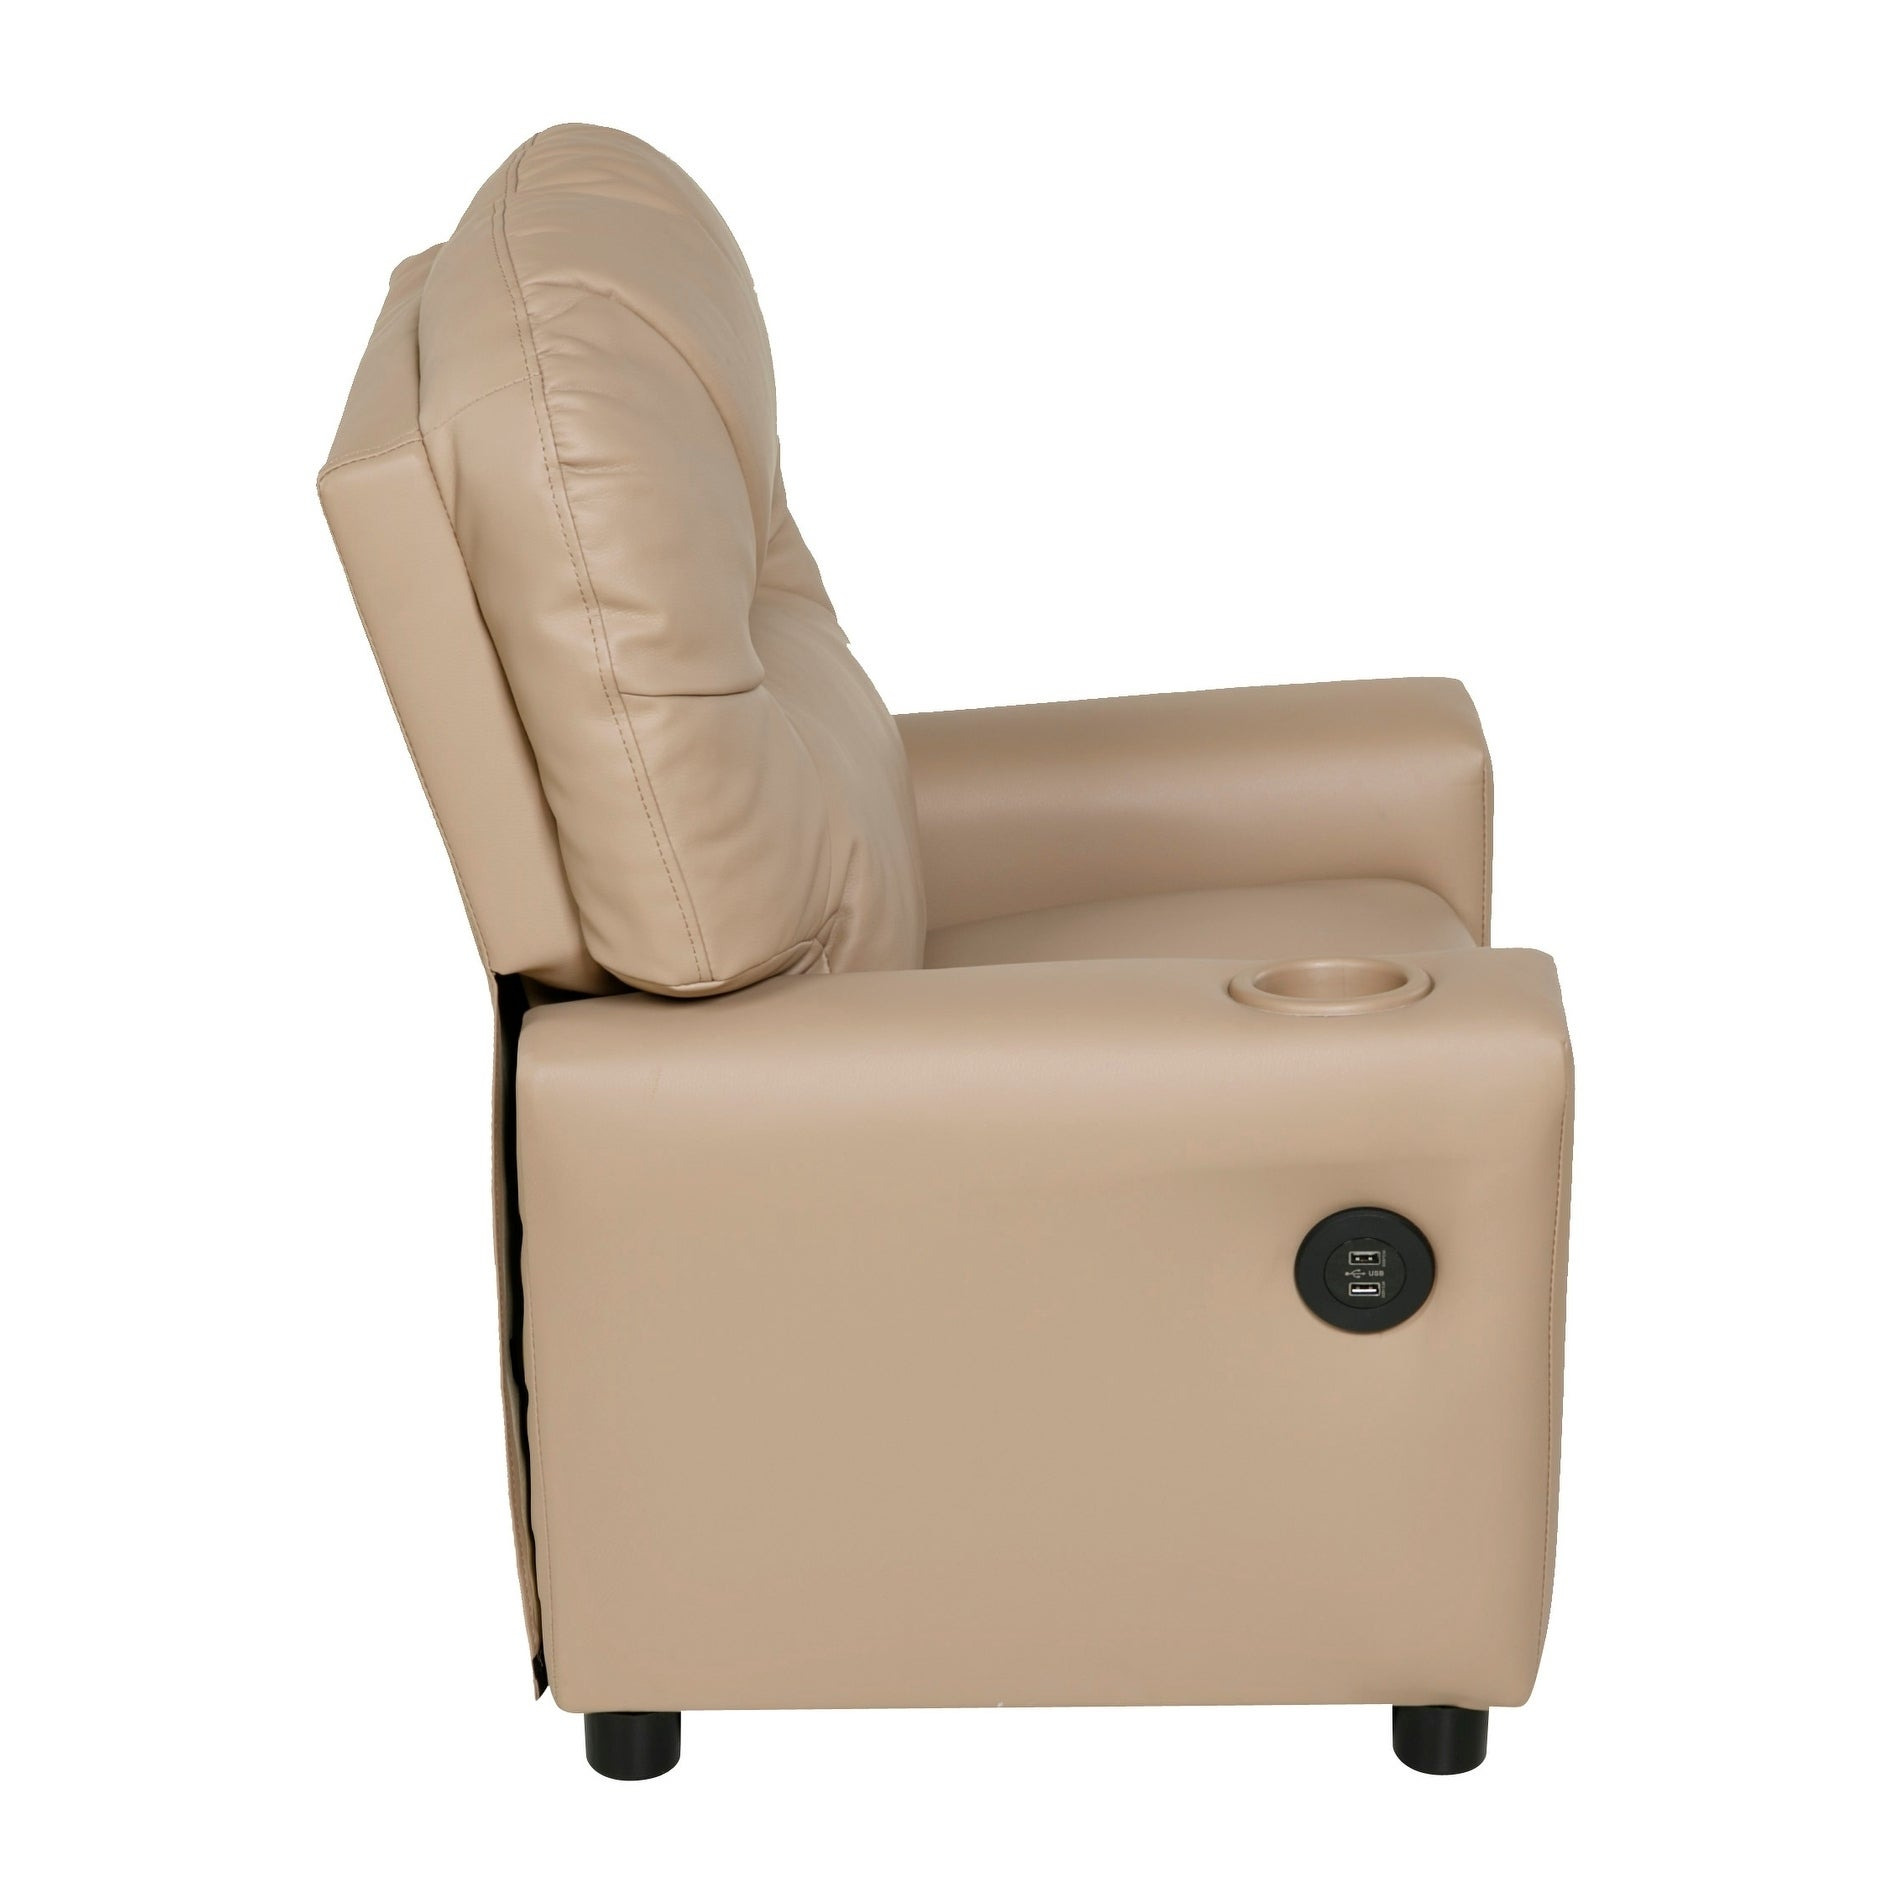 Relaxzen 60 7100KU Youth Recliner With Cupholder And